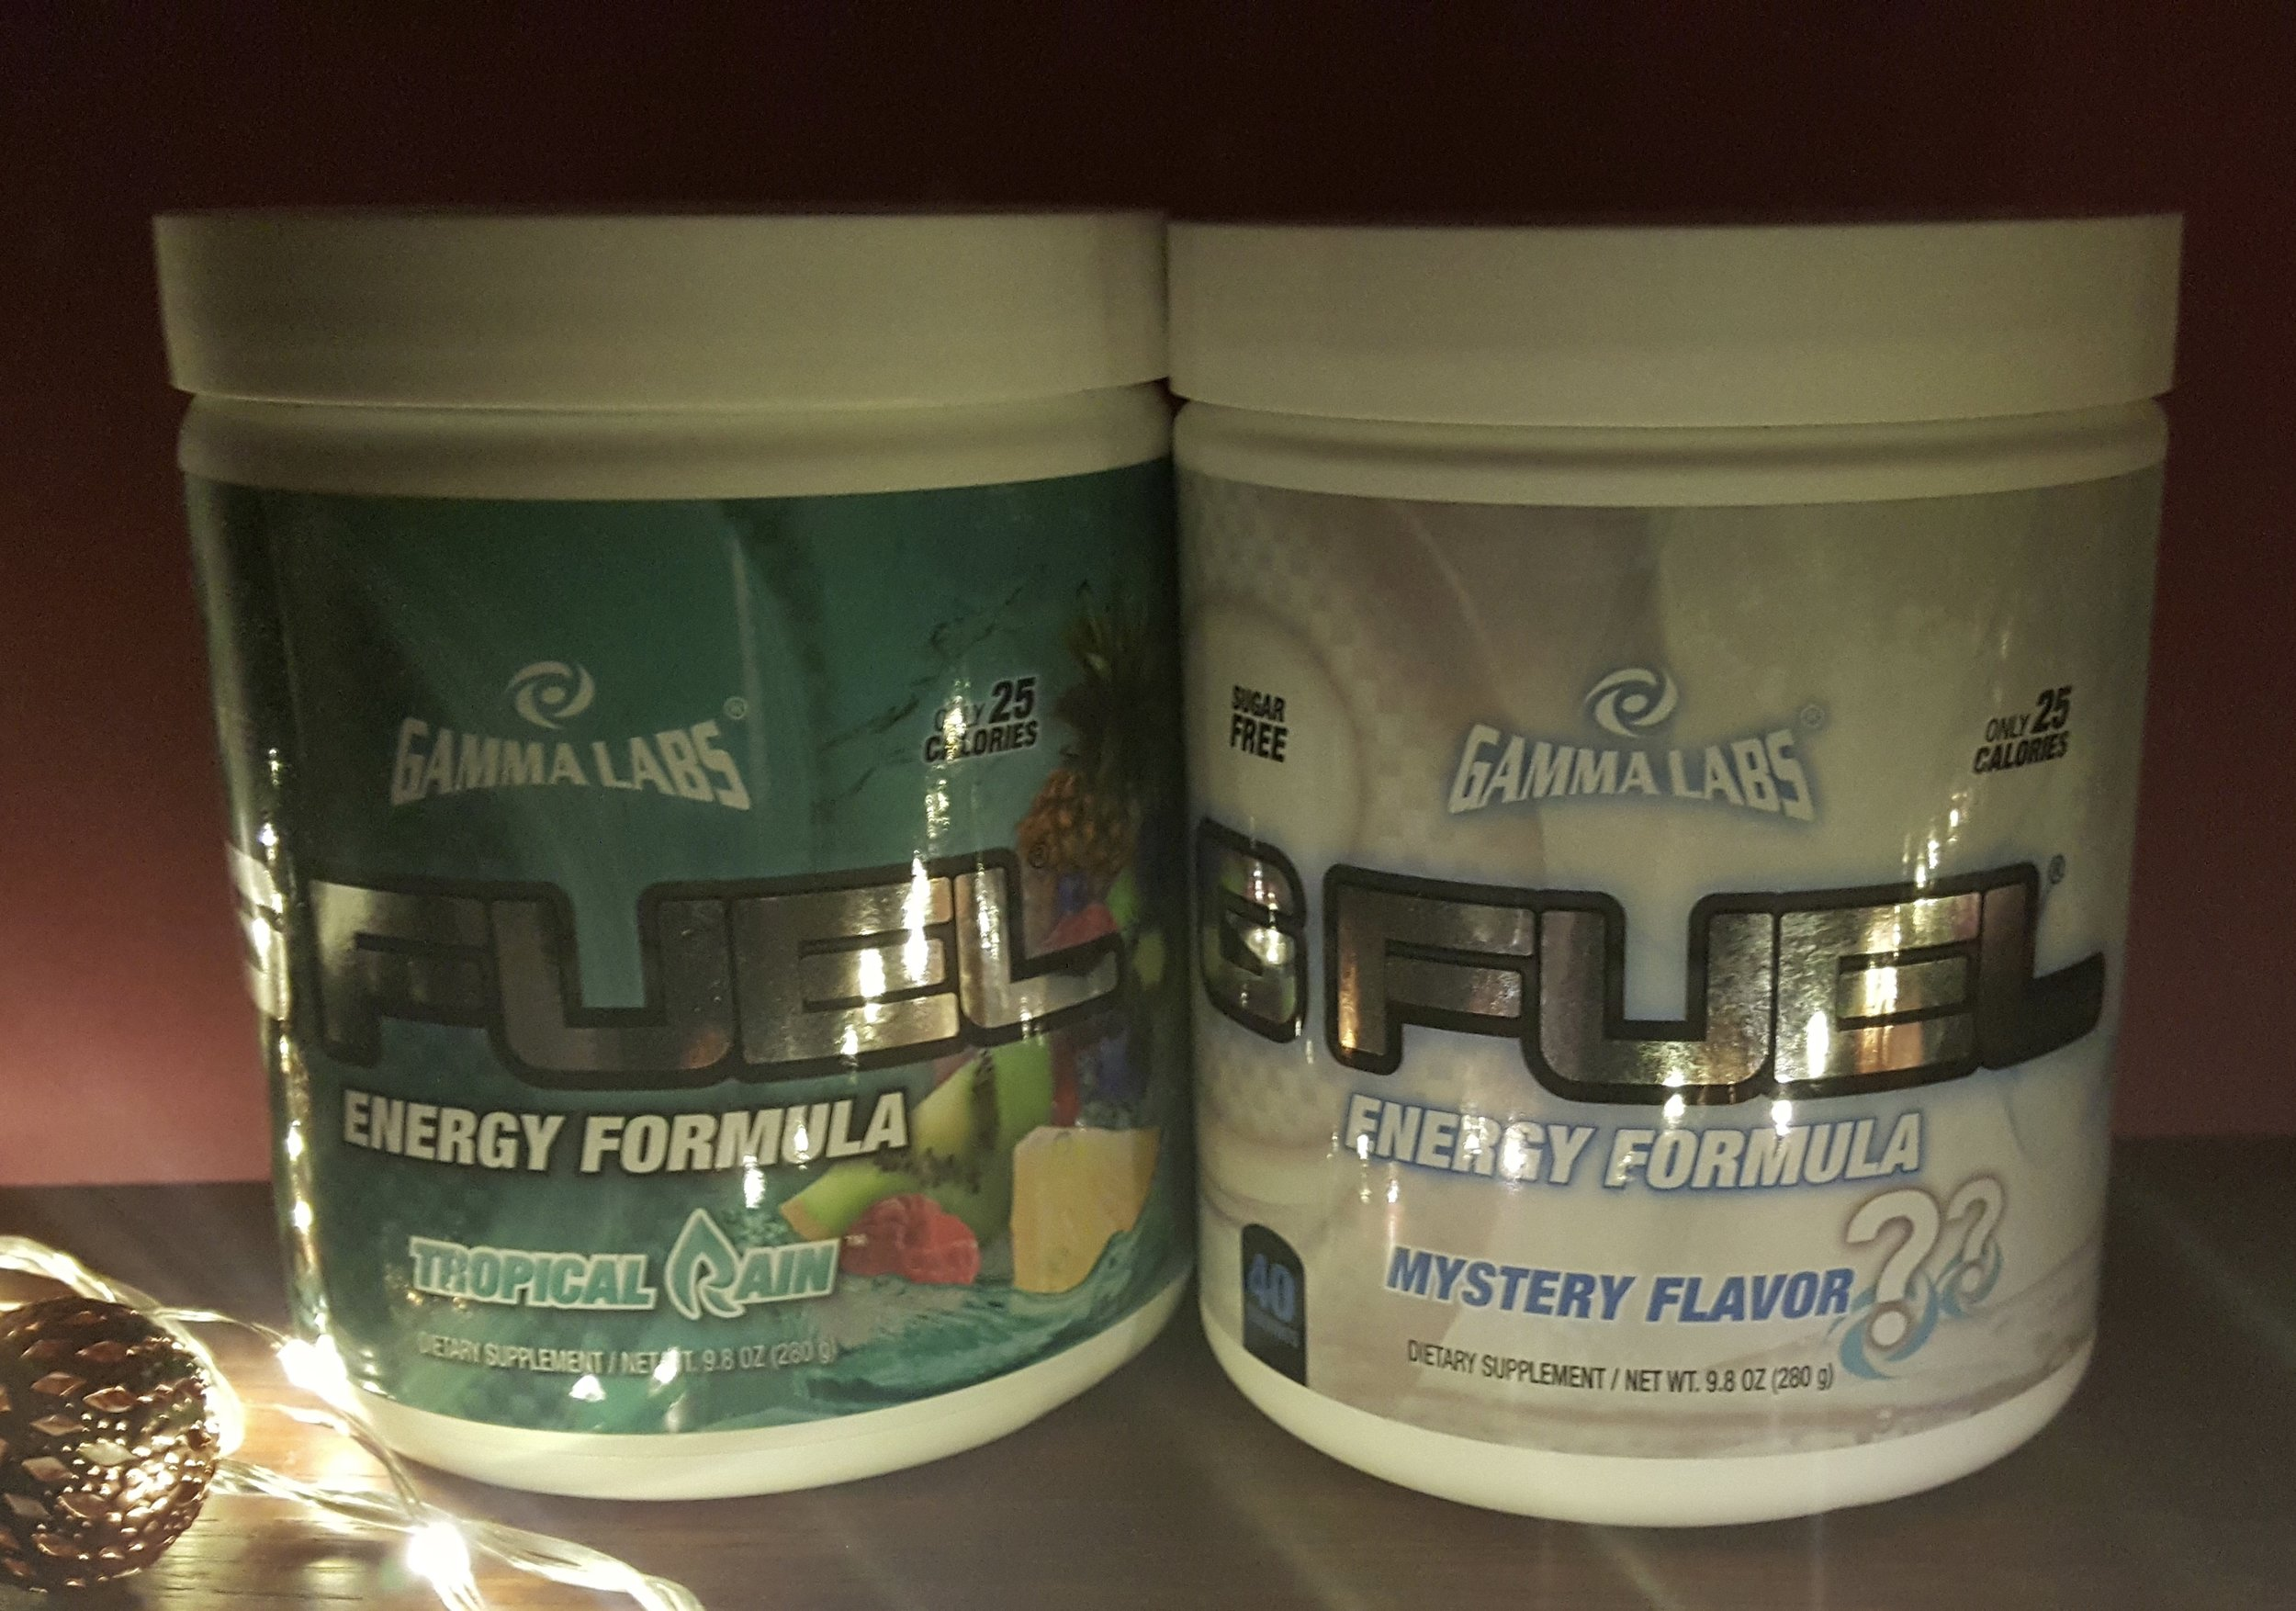 GFUEL, Tropical Rain (left) and Mystery Flavor (right)